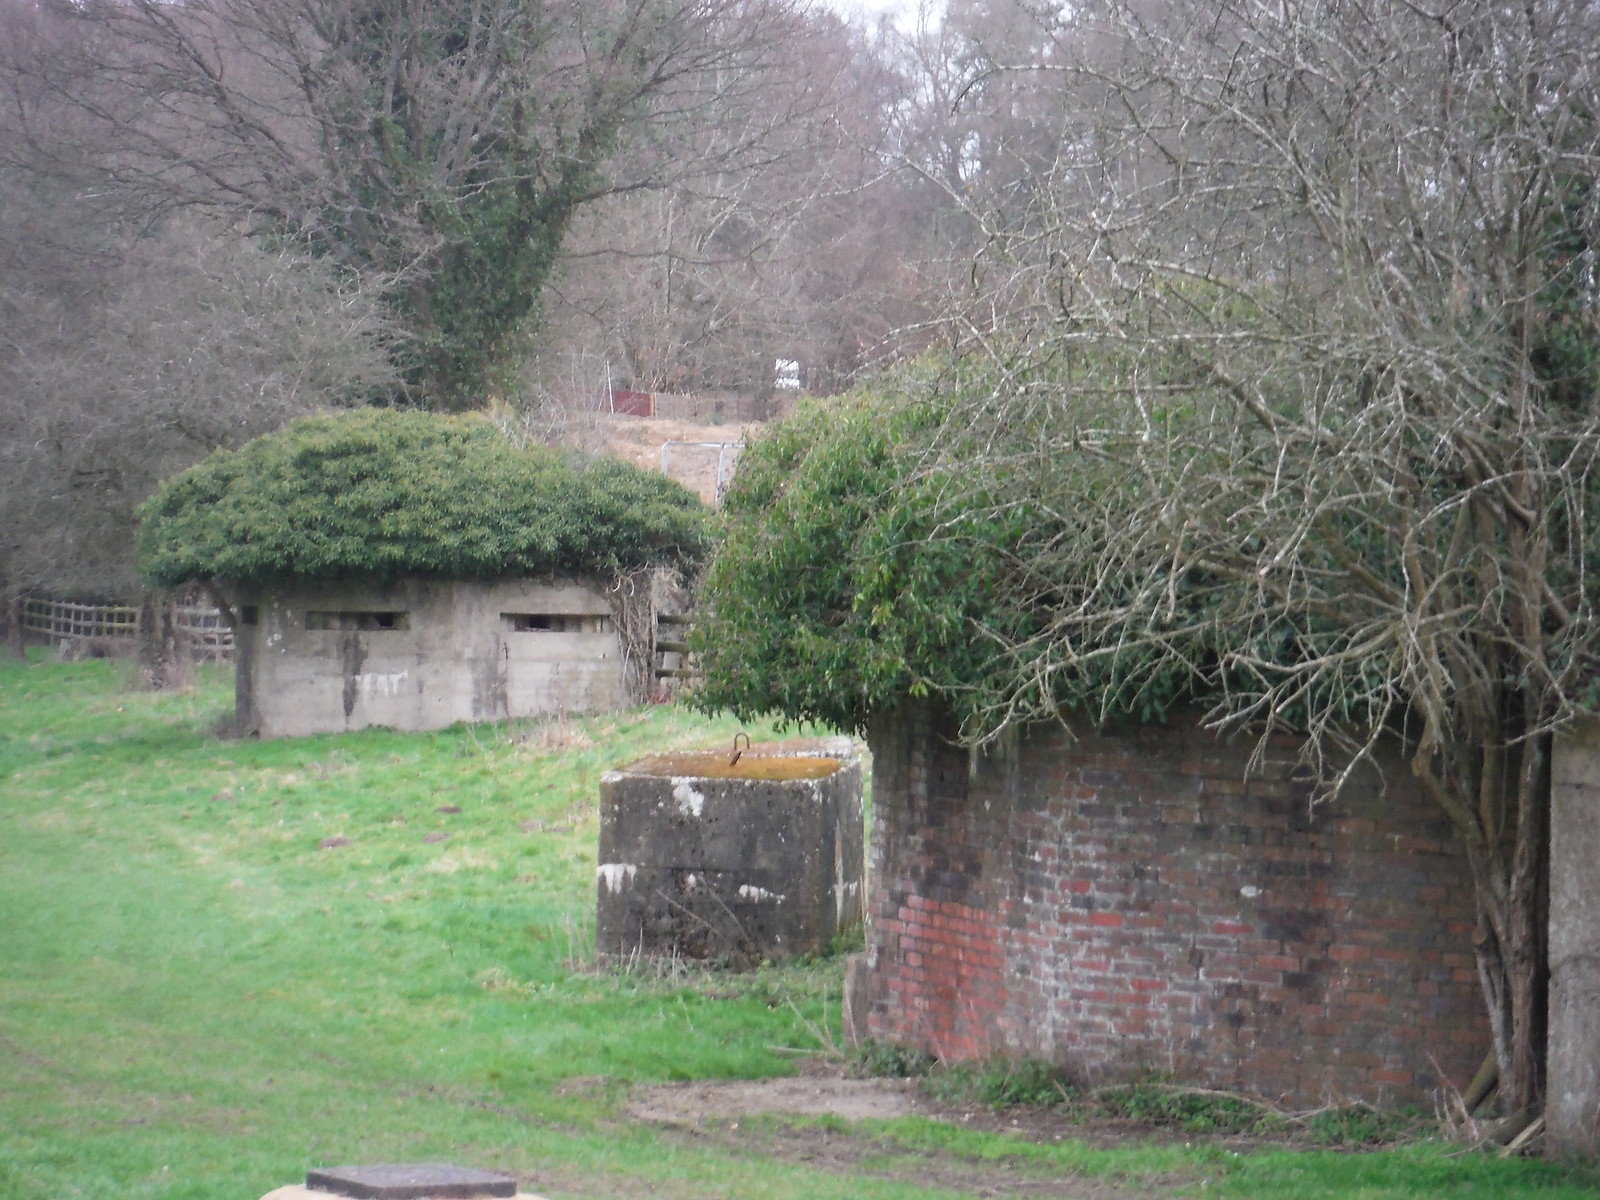 Overgrown Pillboxes, Tilford SWC Walk 144 Haslemere to Farnham